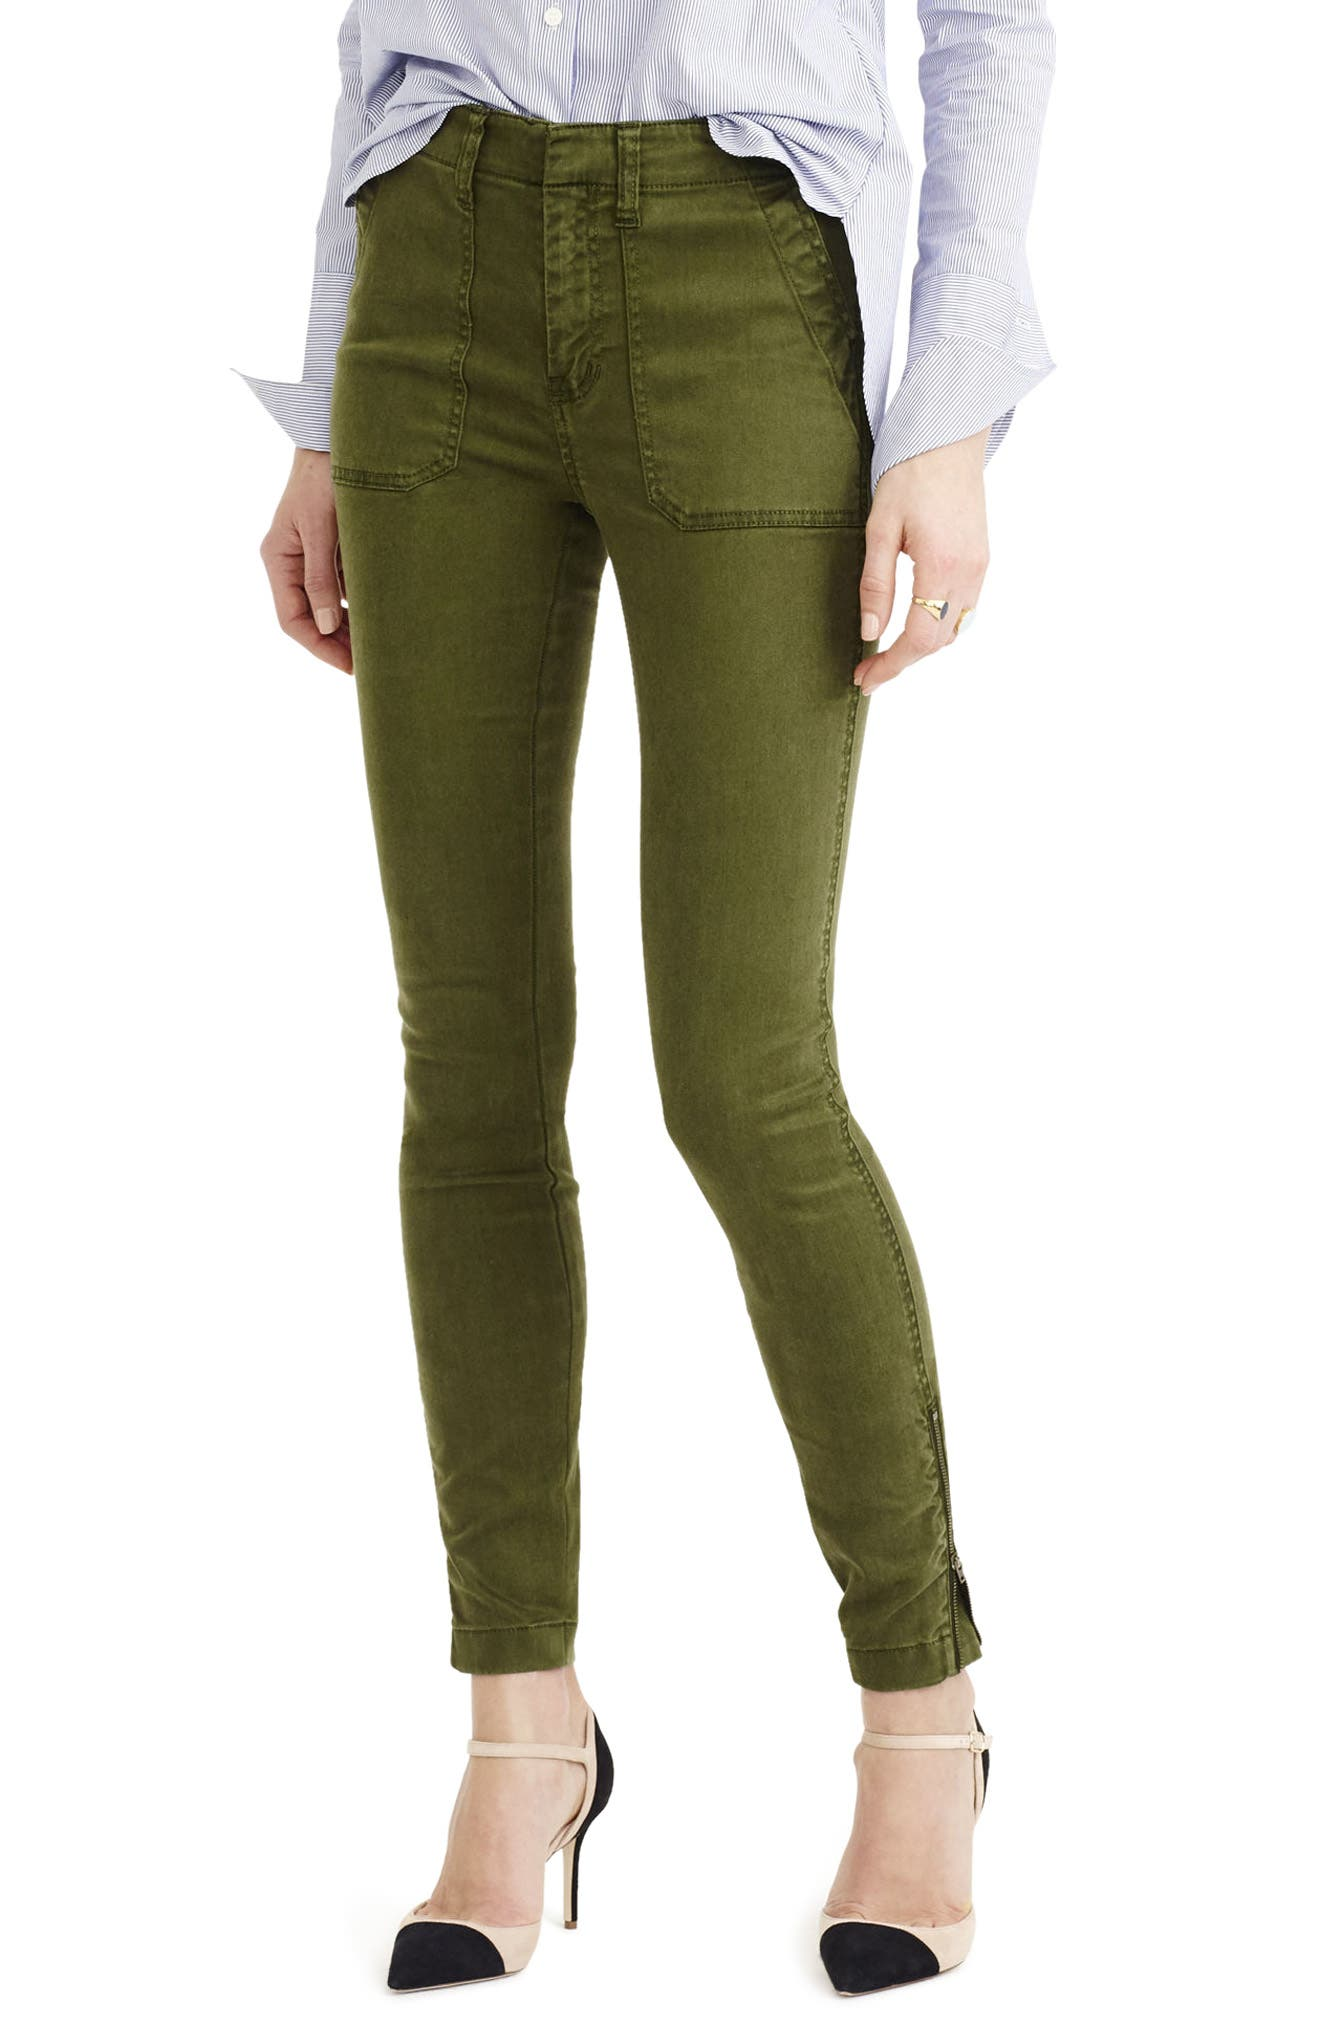 Imagine your favorite skinny jeans but comfier. Yep, we made those and added cargo pockets. Sits just above hip. Fitted through hip and thigh, with a fitted leg. 28 .